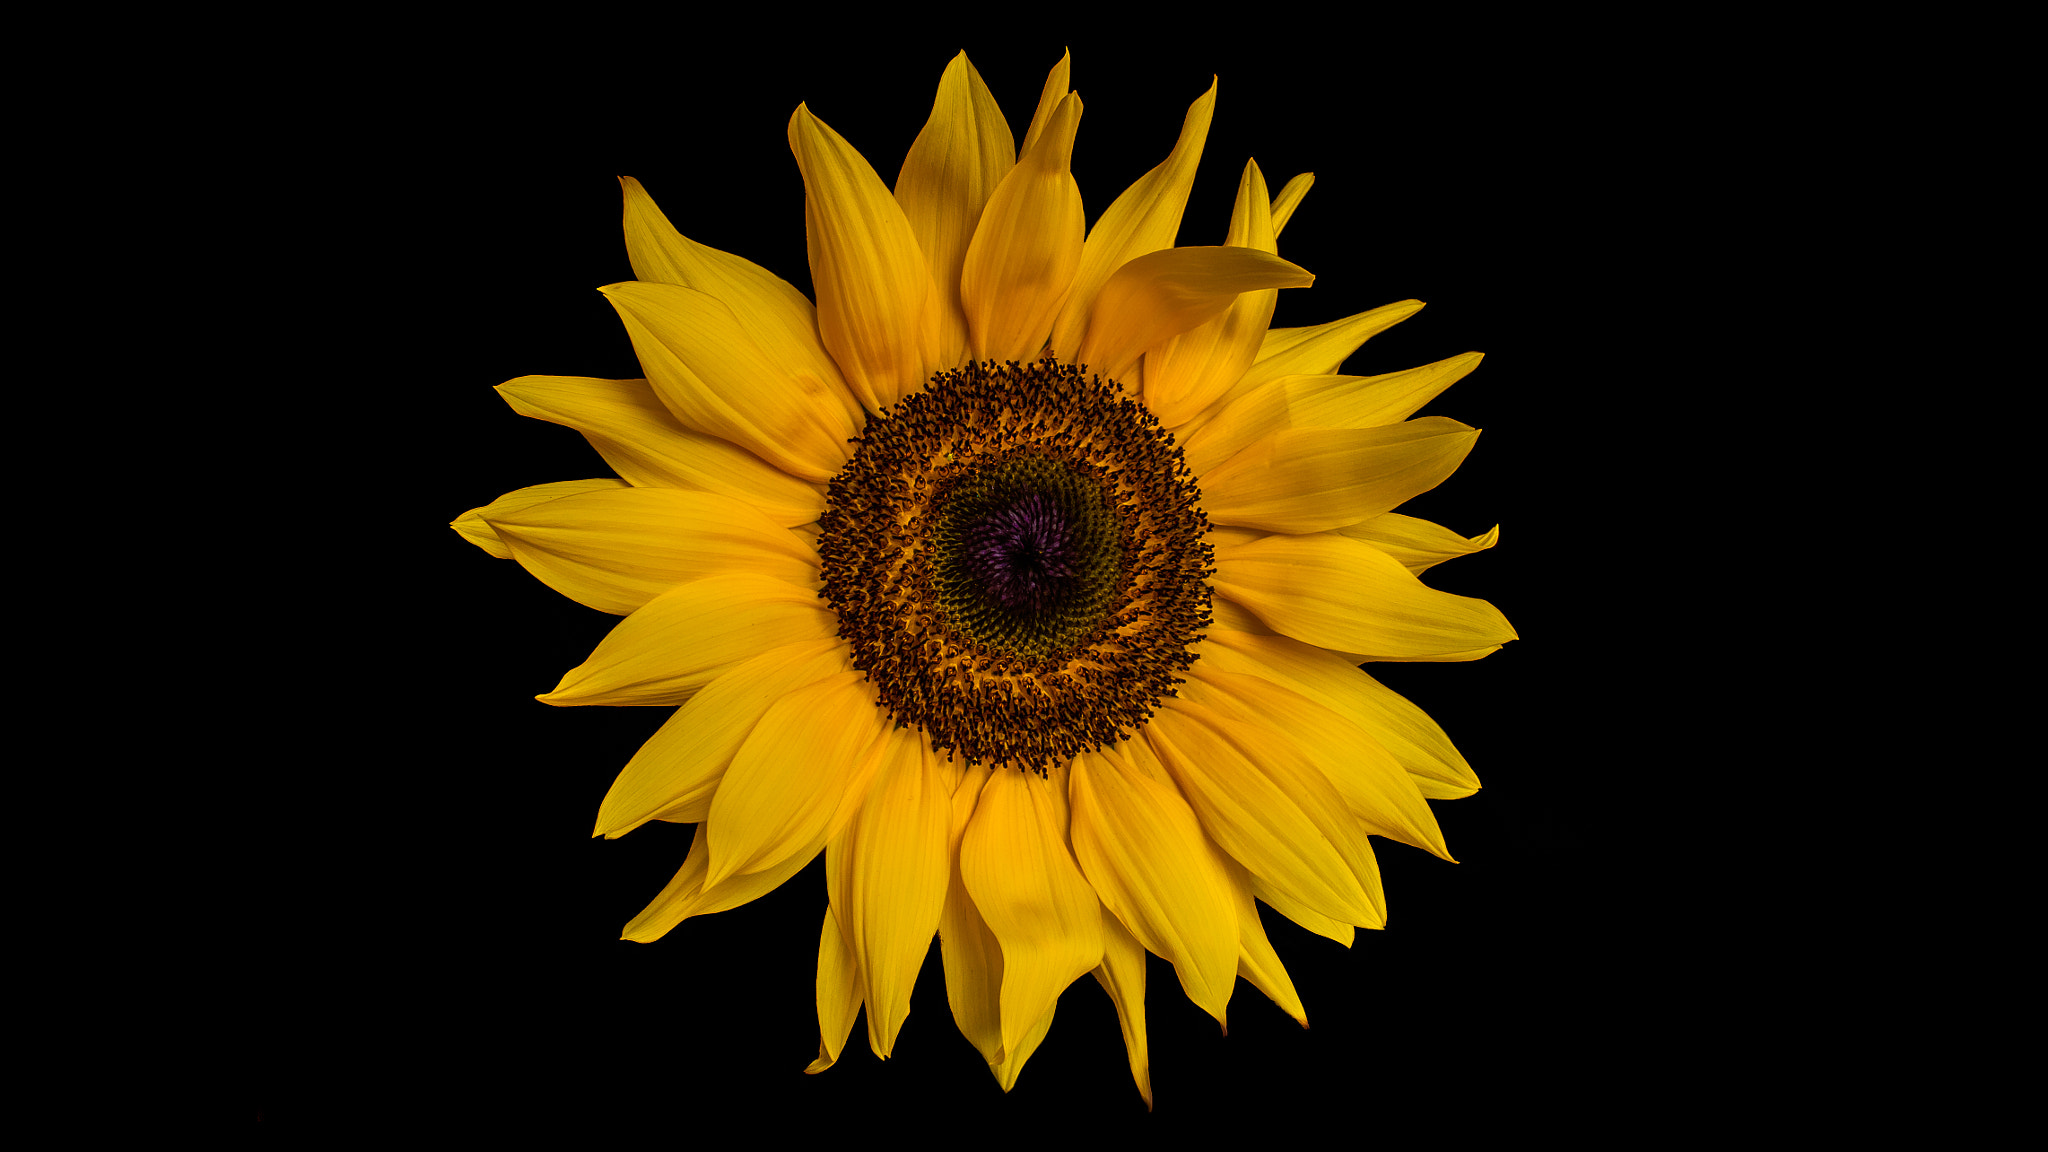 Photograph Sunflower by Philip W on 500px